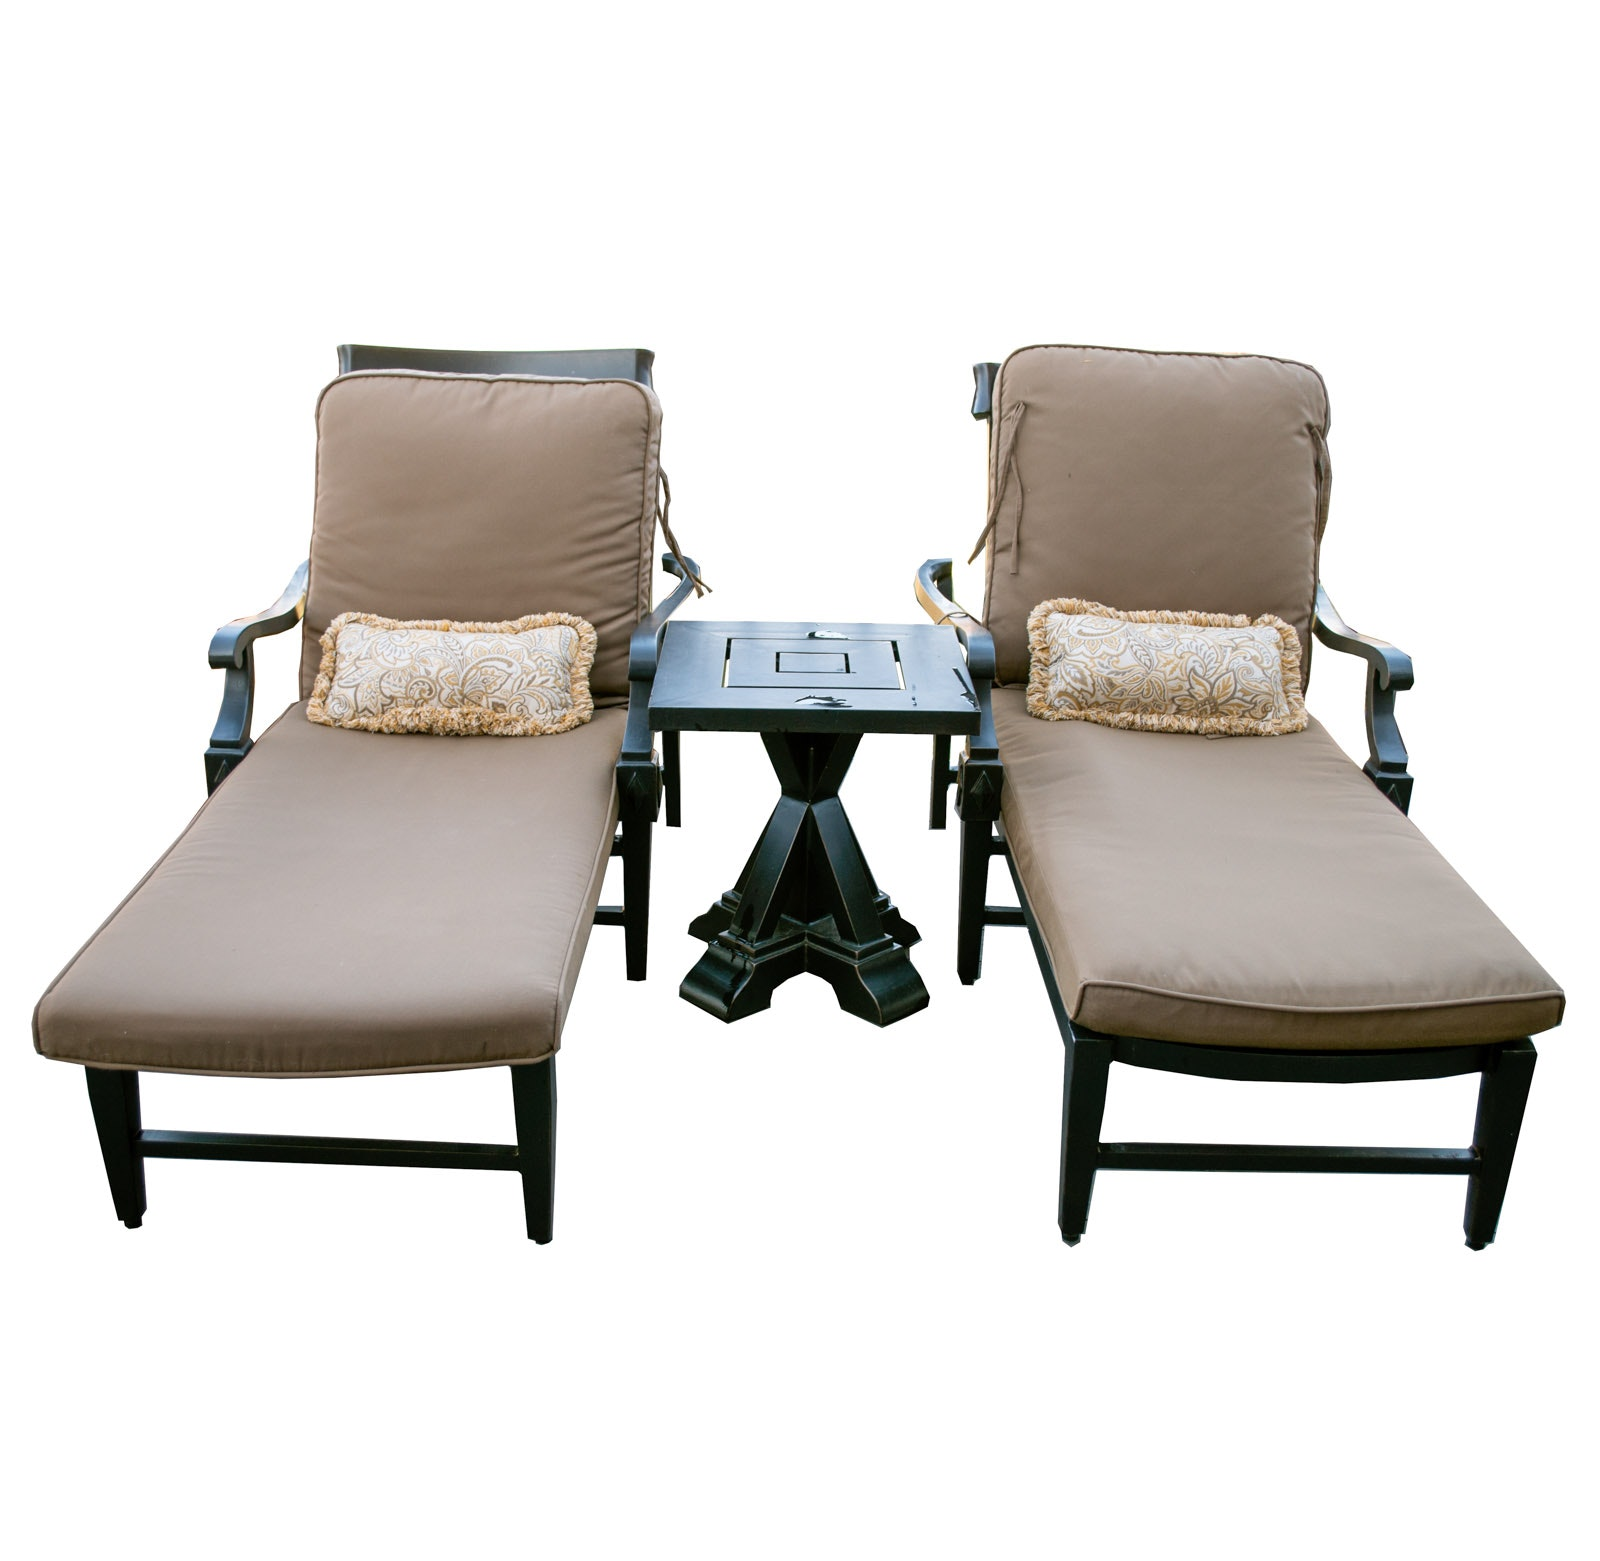 "Pair of Costco ""Broadway"" Lounge Patio Chairs and Side Table"